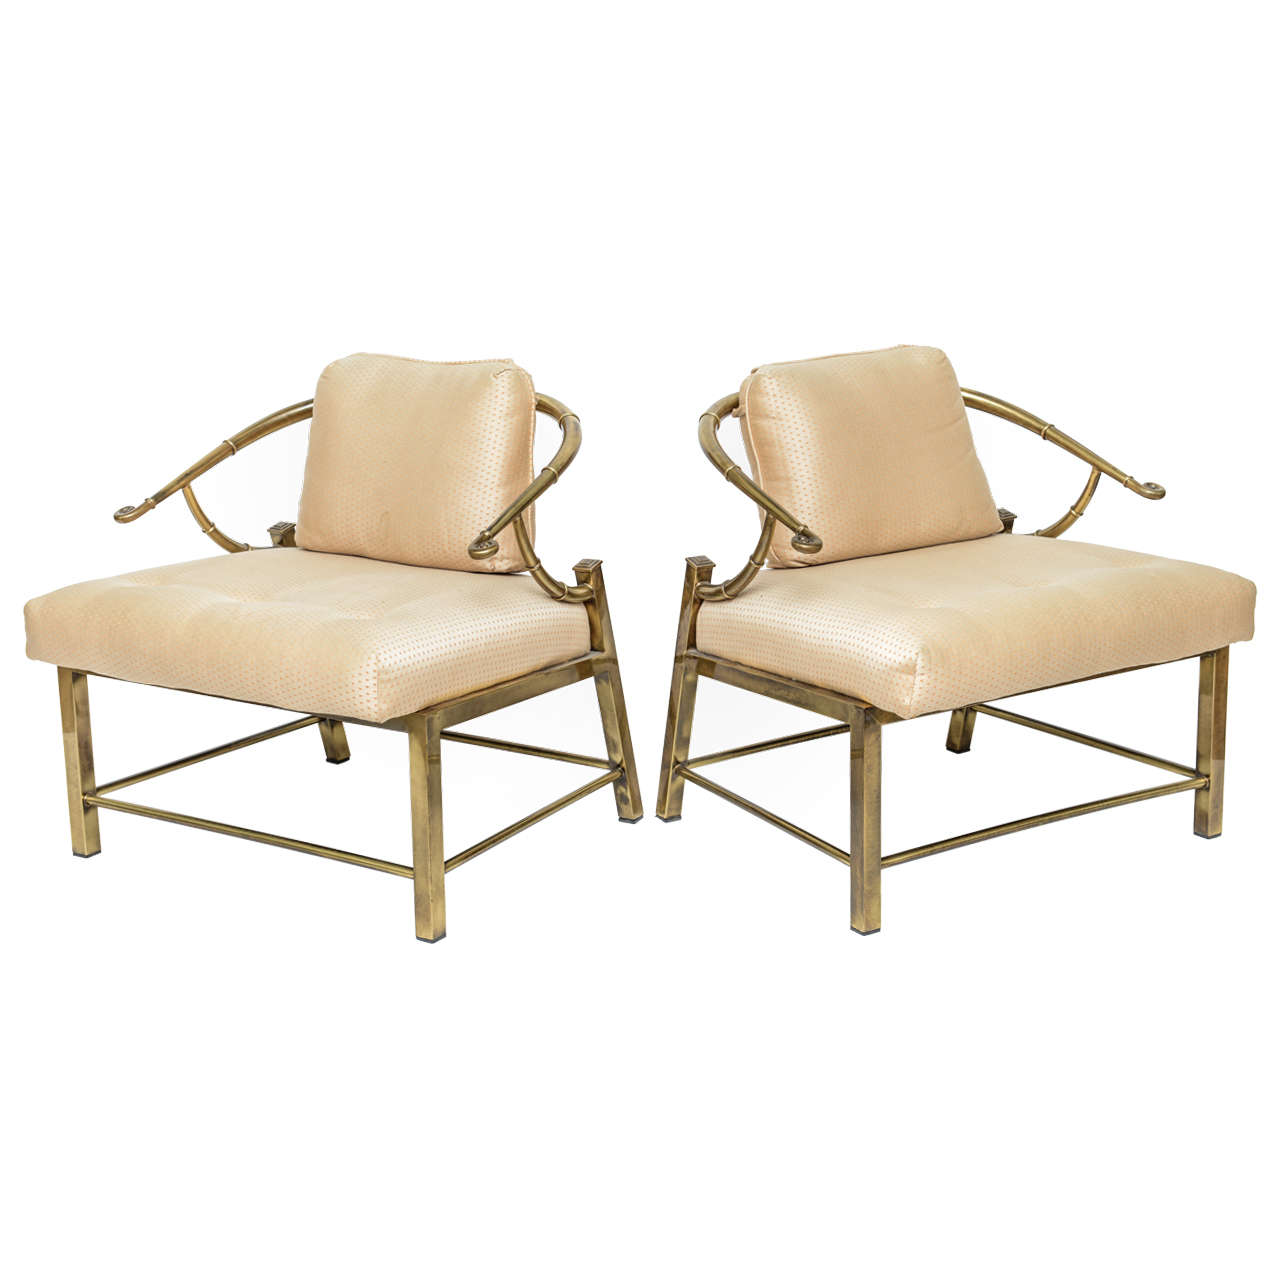 Mastercraft Chairs Made In Italy At 1stdibs